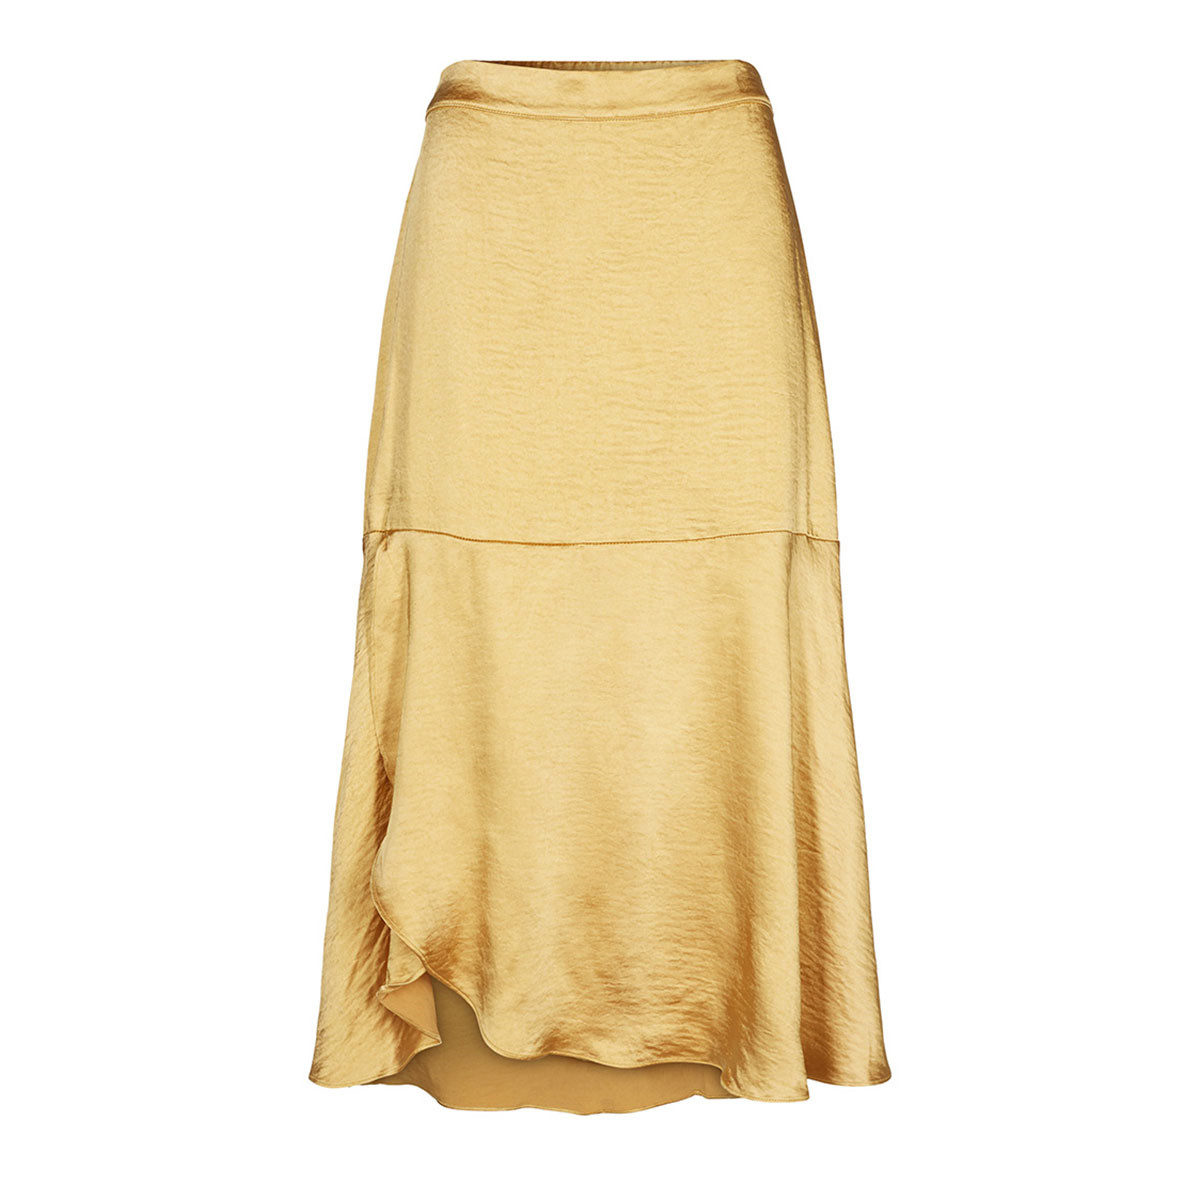 CO'COUTURE NEDERDEL - MIRAGE SATEEN MUSTARD